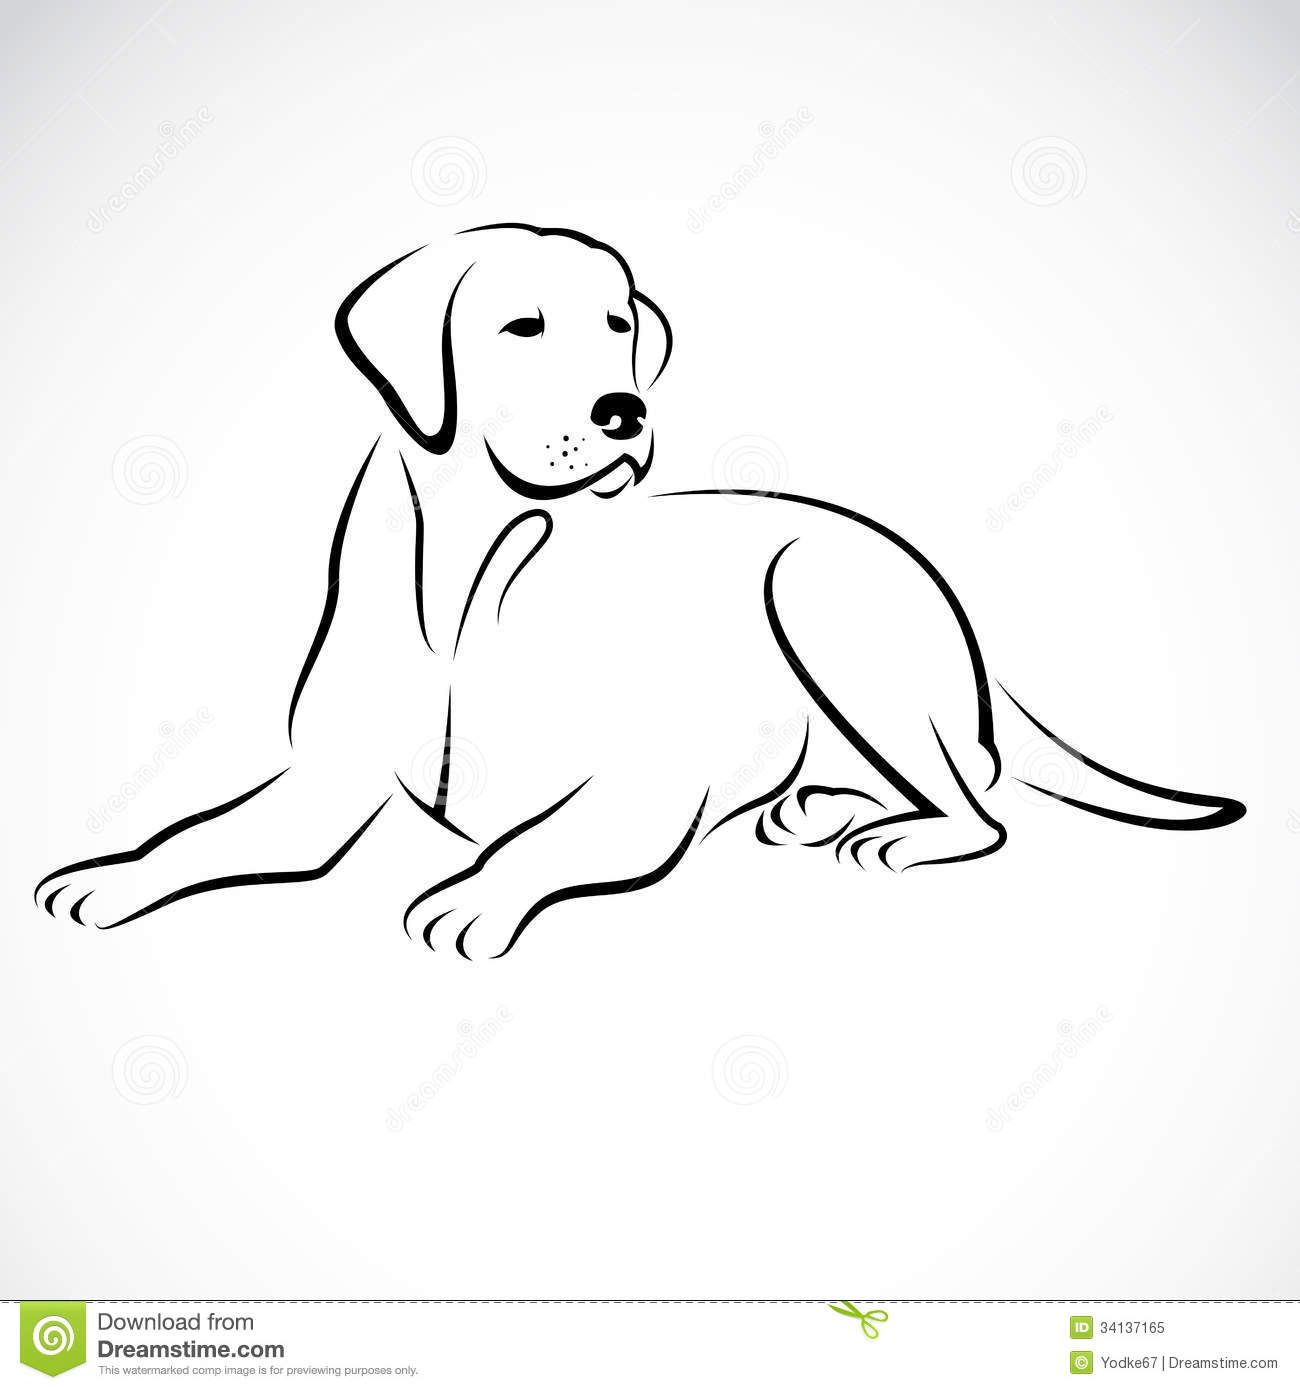 Vector Image Of An Dog Labrador - Download From Over 38 Million High ...